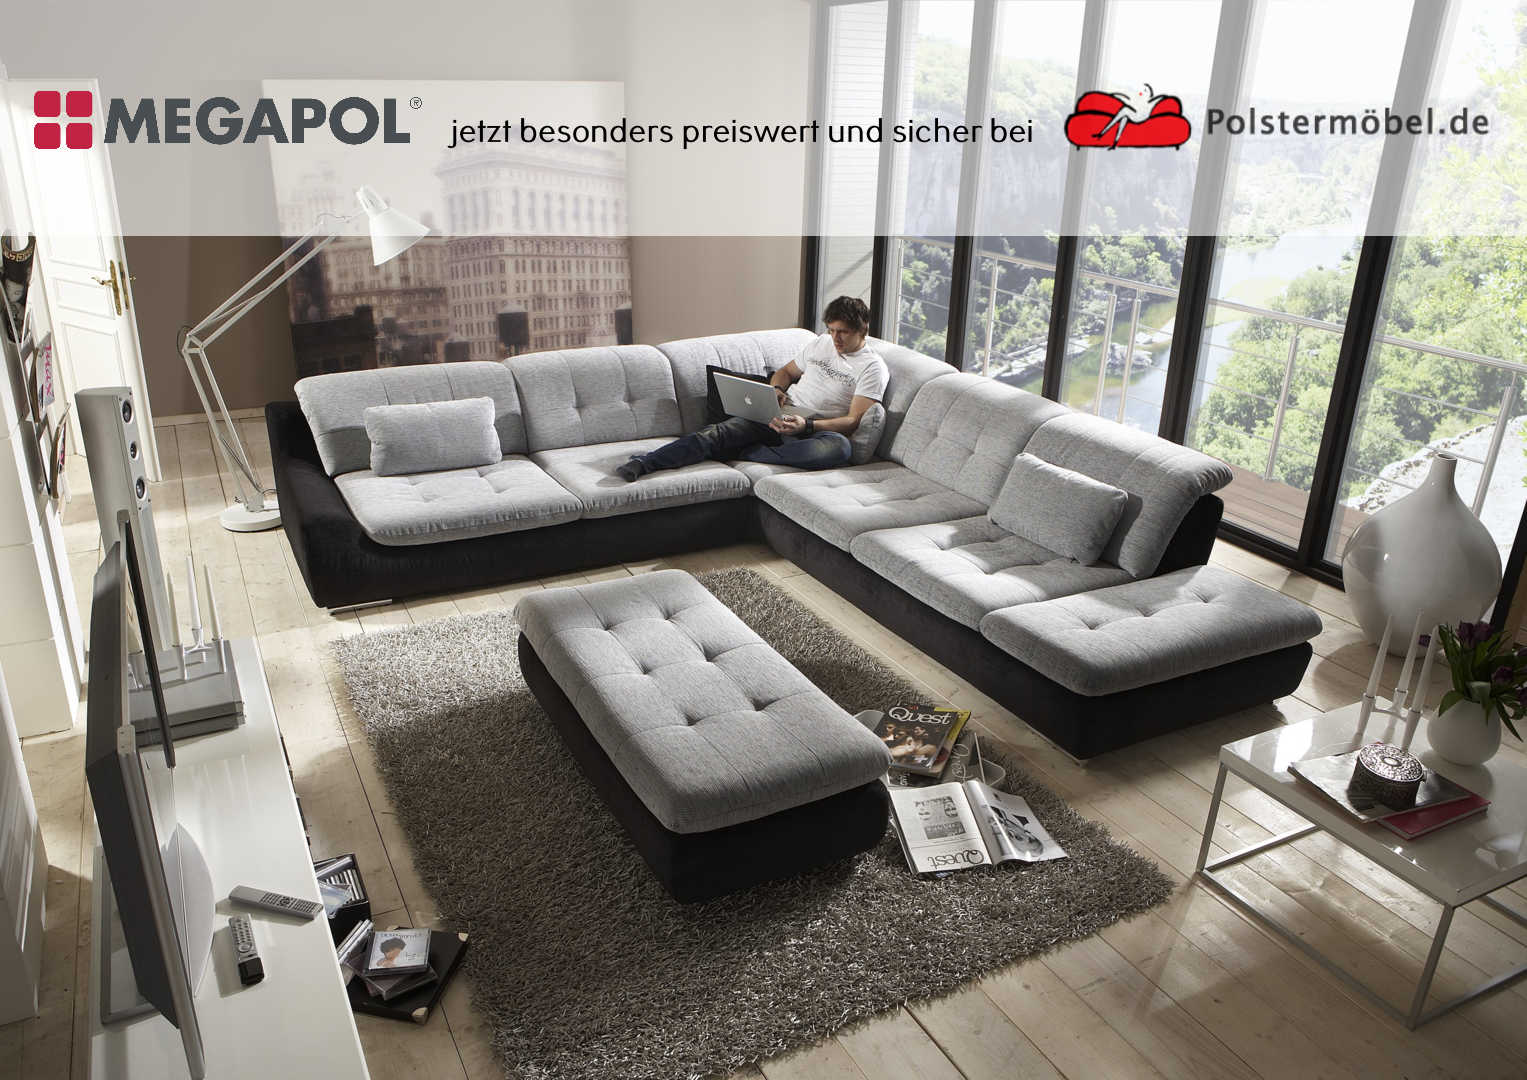 megapol spike polsterm. Black Bedroom Furniture Sets. Home Design Ideas